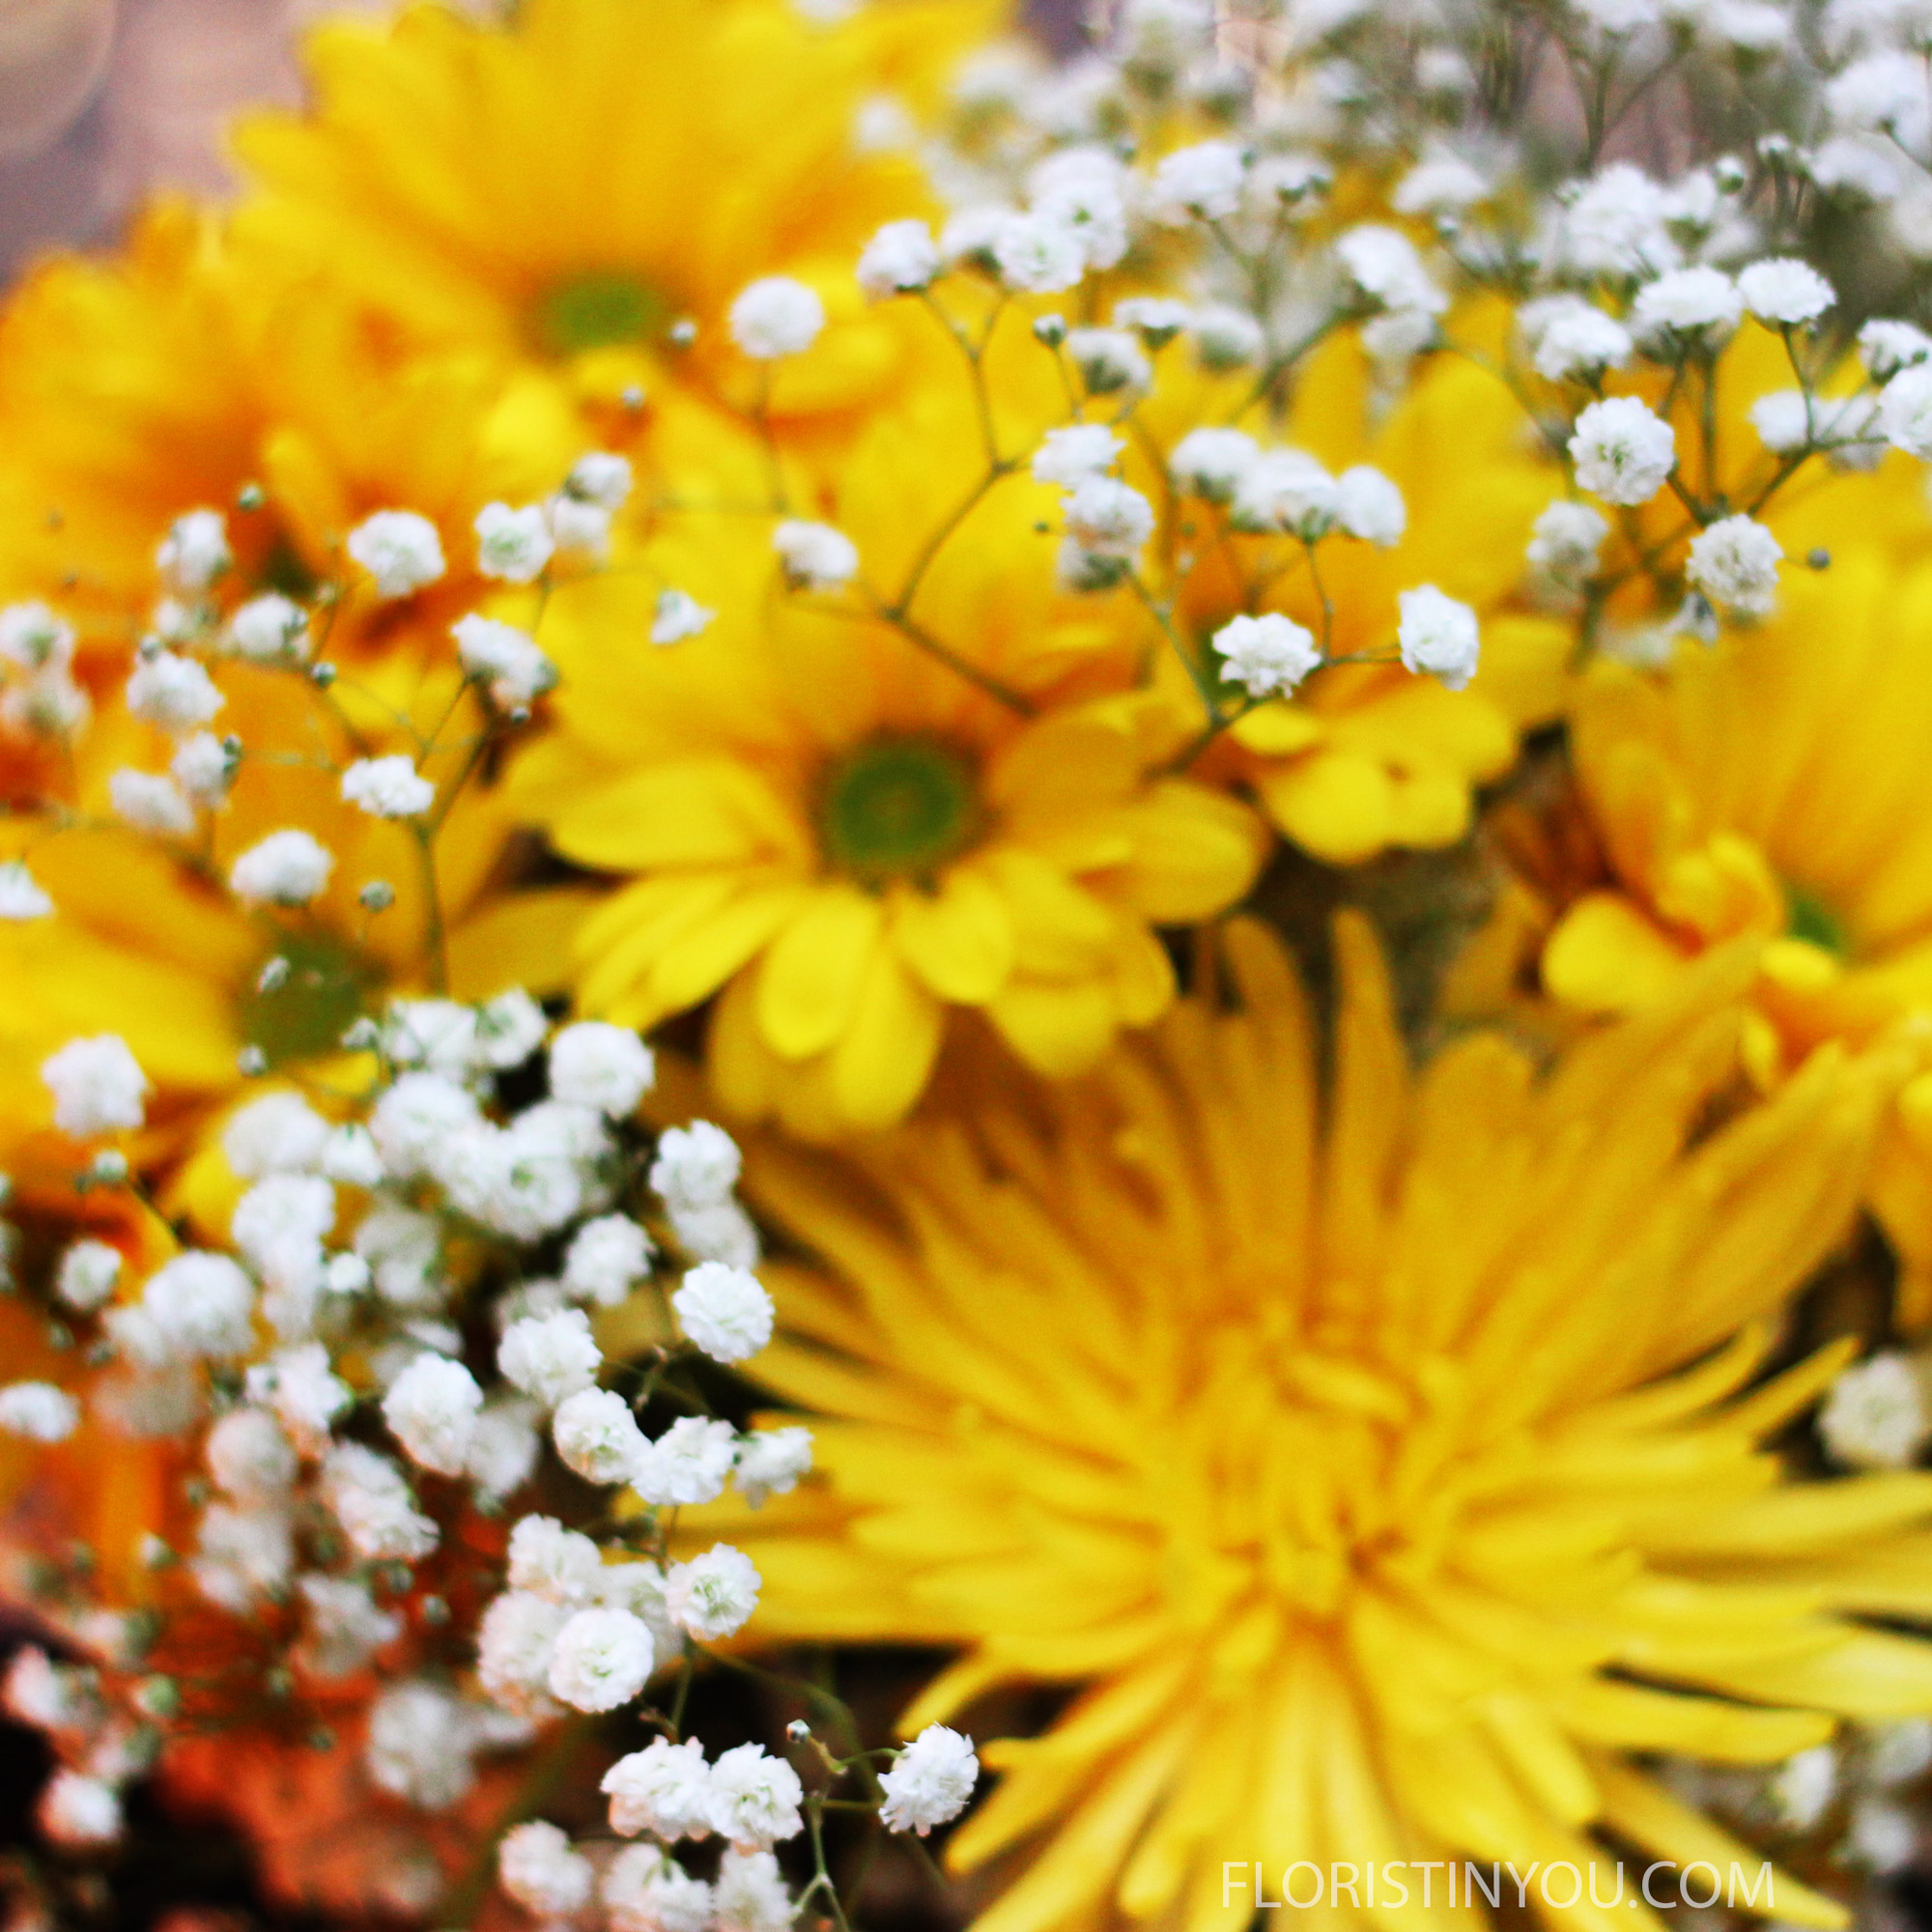 Smell the daisies.